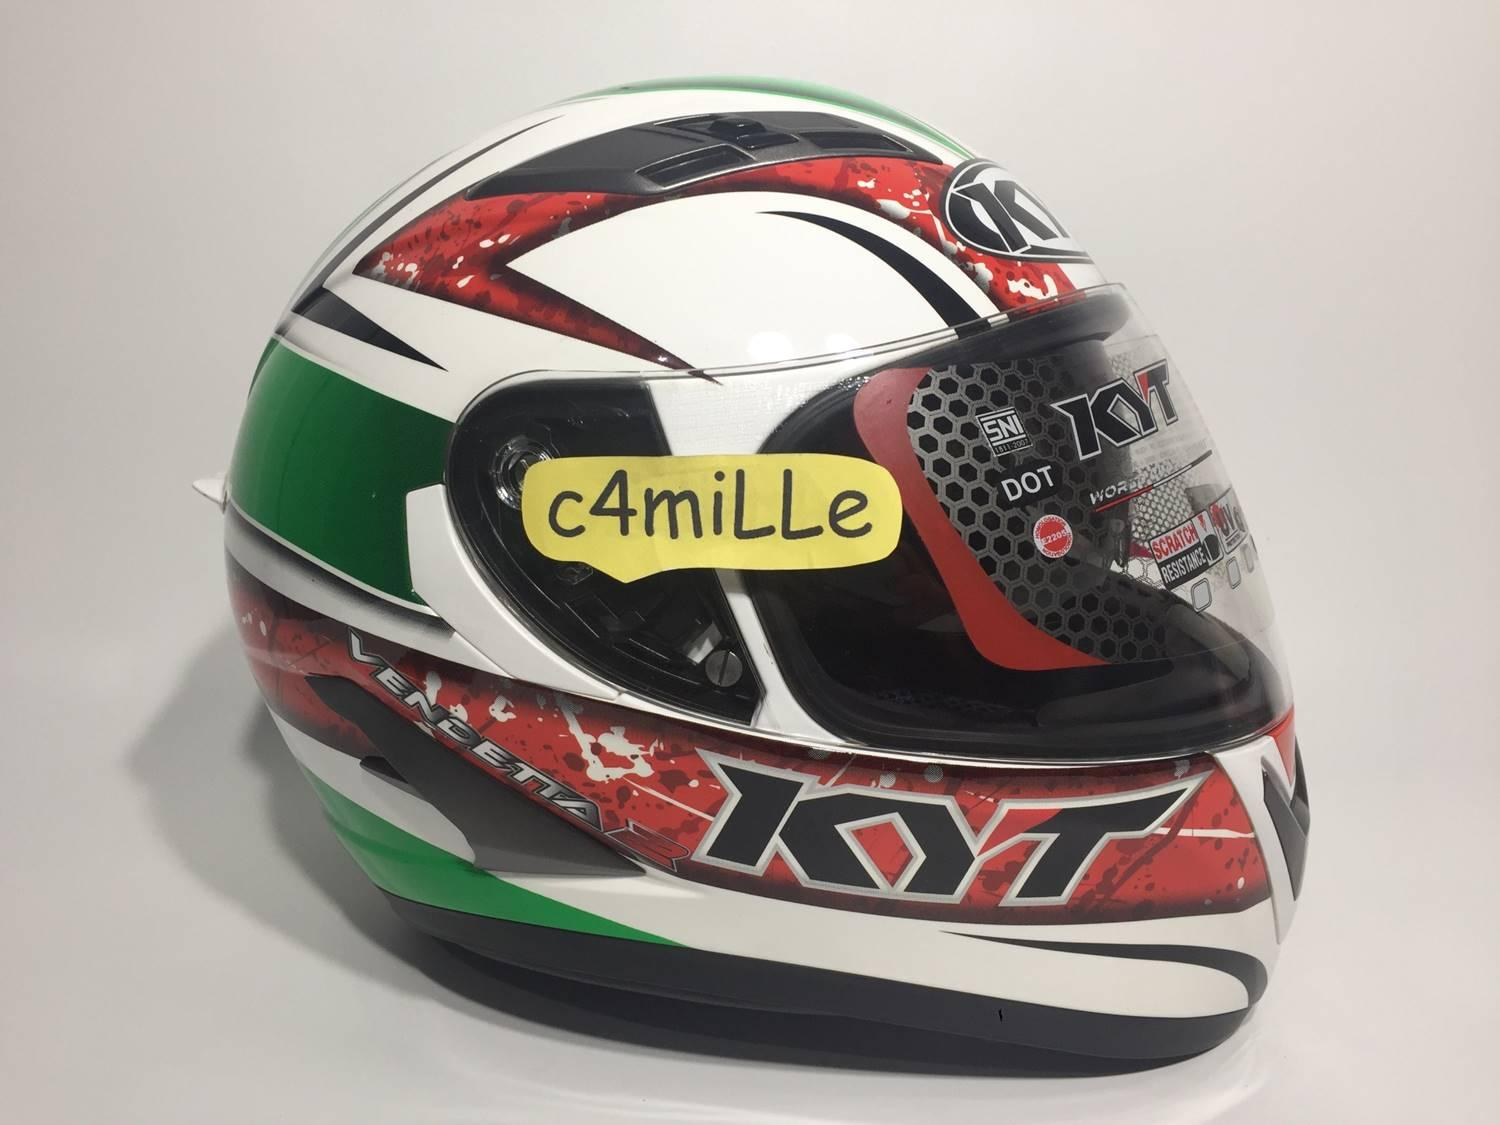 HELM KYT VENDETTA 2 #1 WHITE RED GREEN DOUBLE VISOR FULL FACE